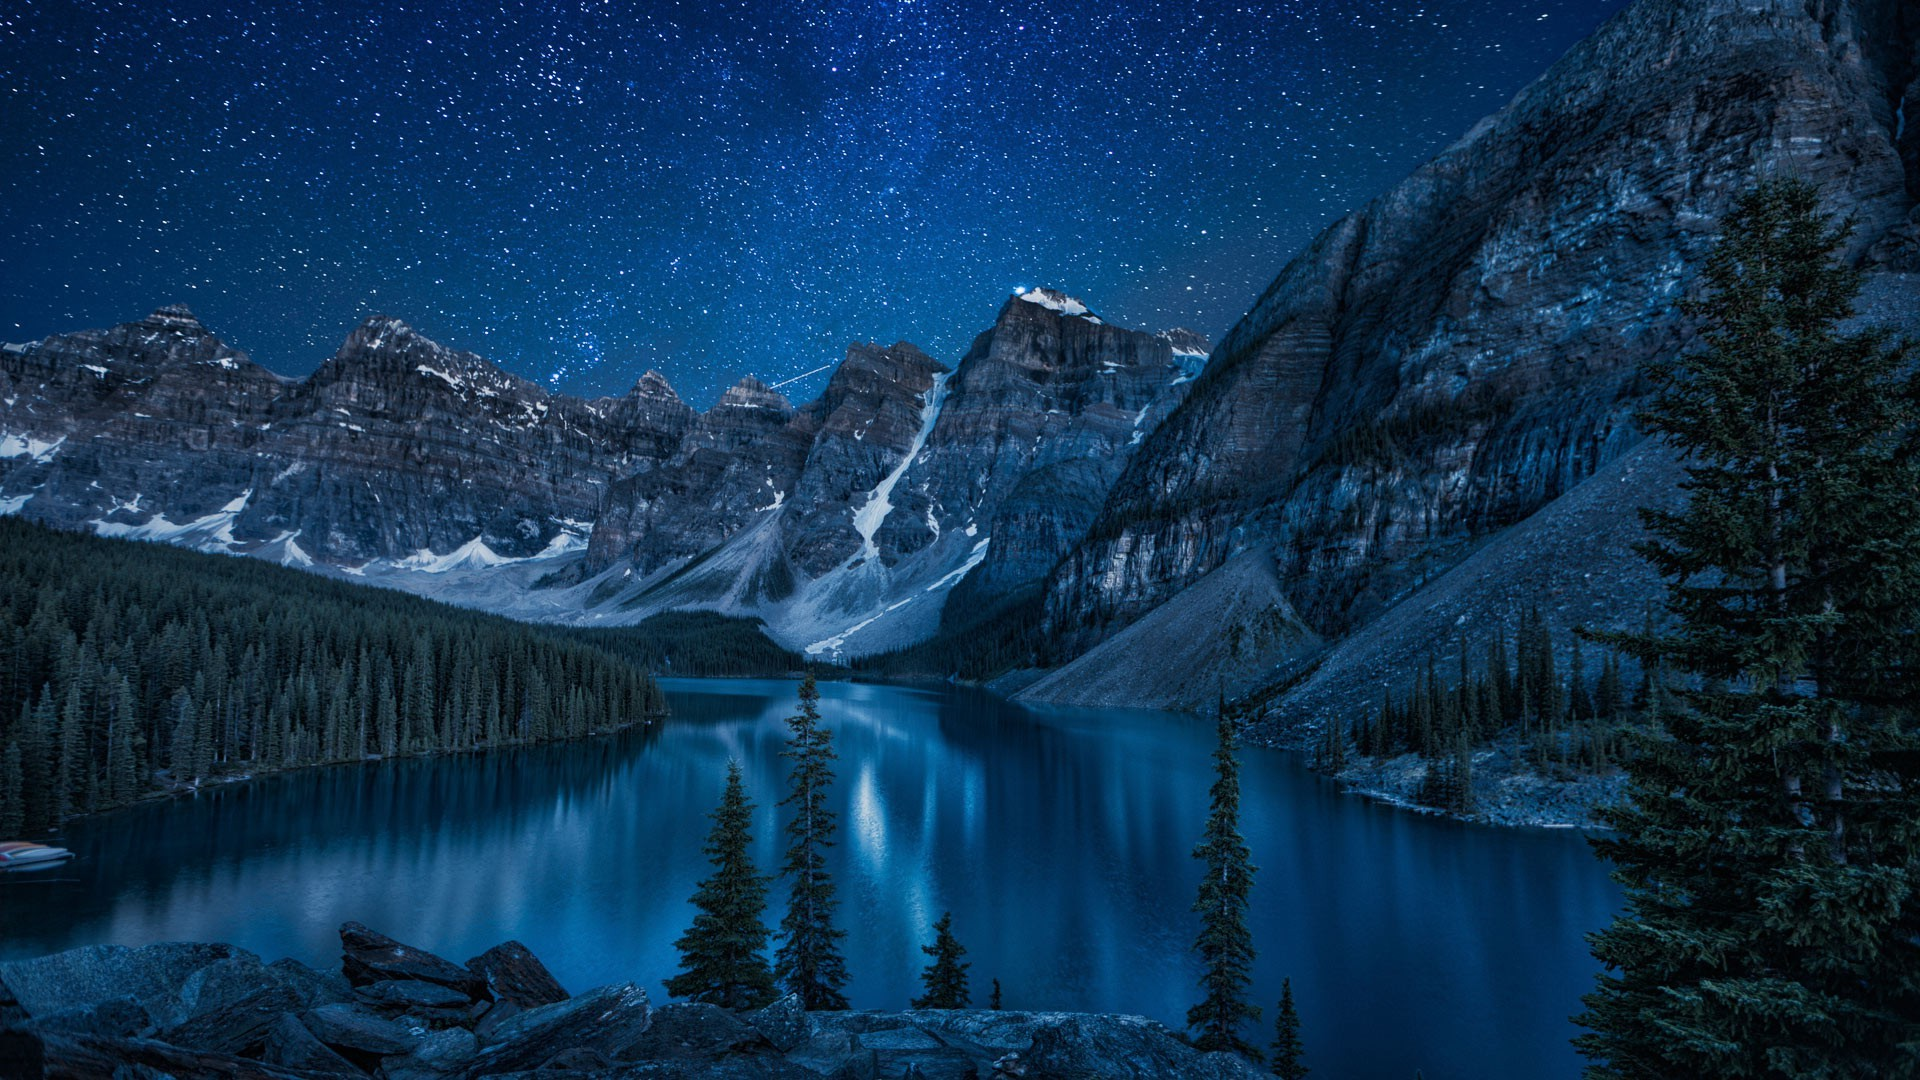 moraine lake at night snowy landscape in the mountains canada